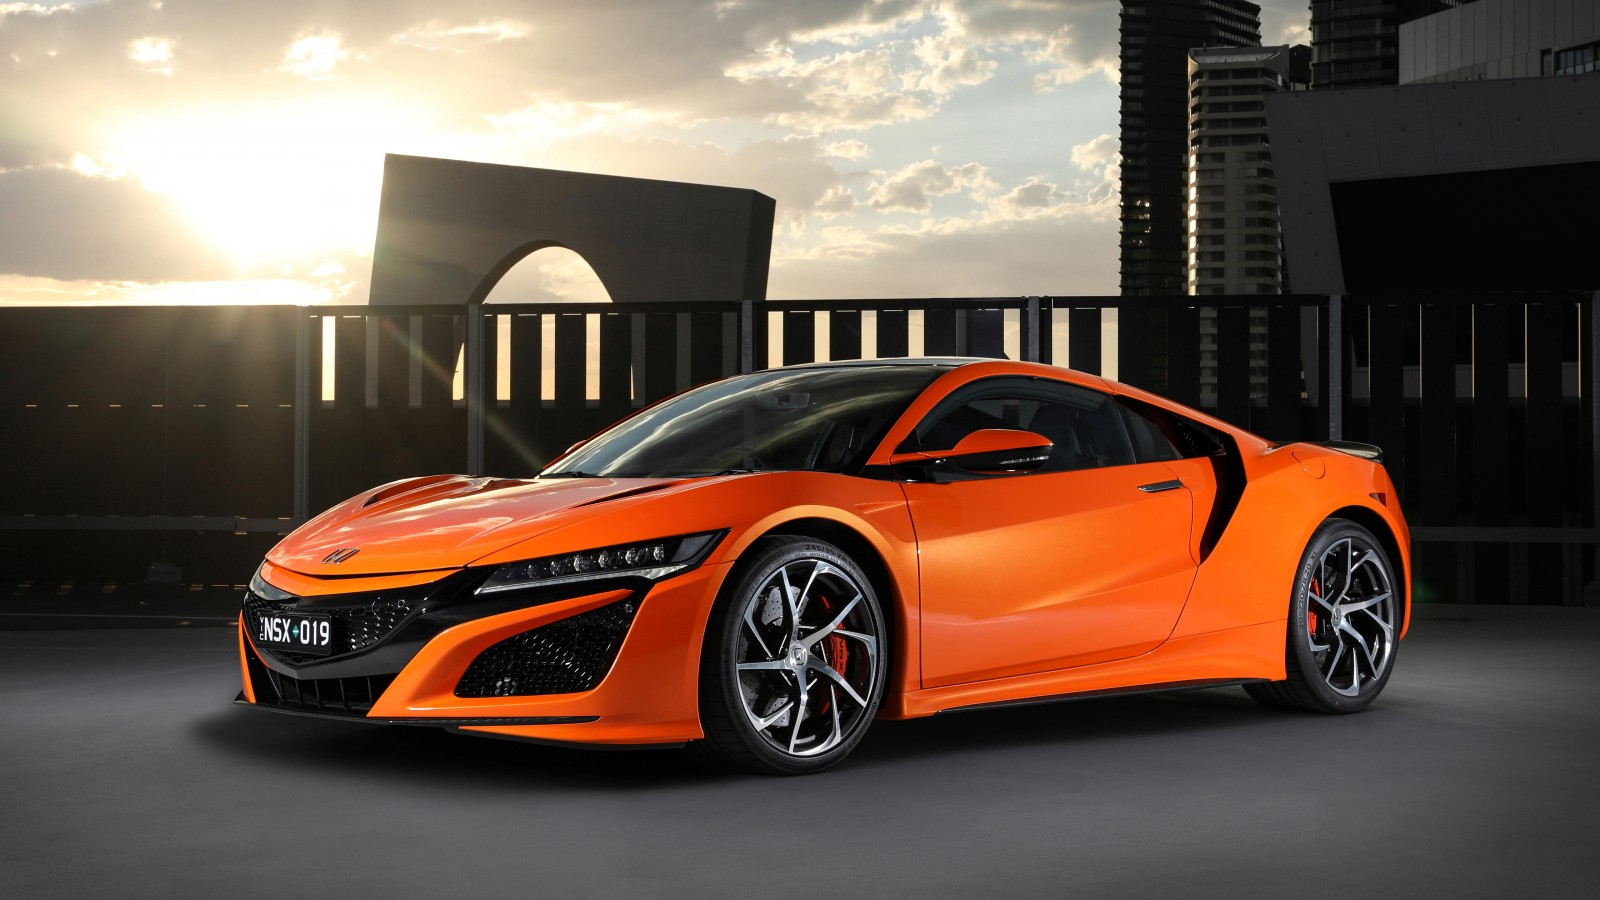 honda nsx 2019 4k wallpaper